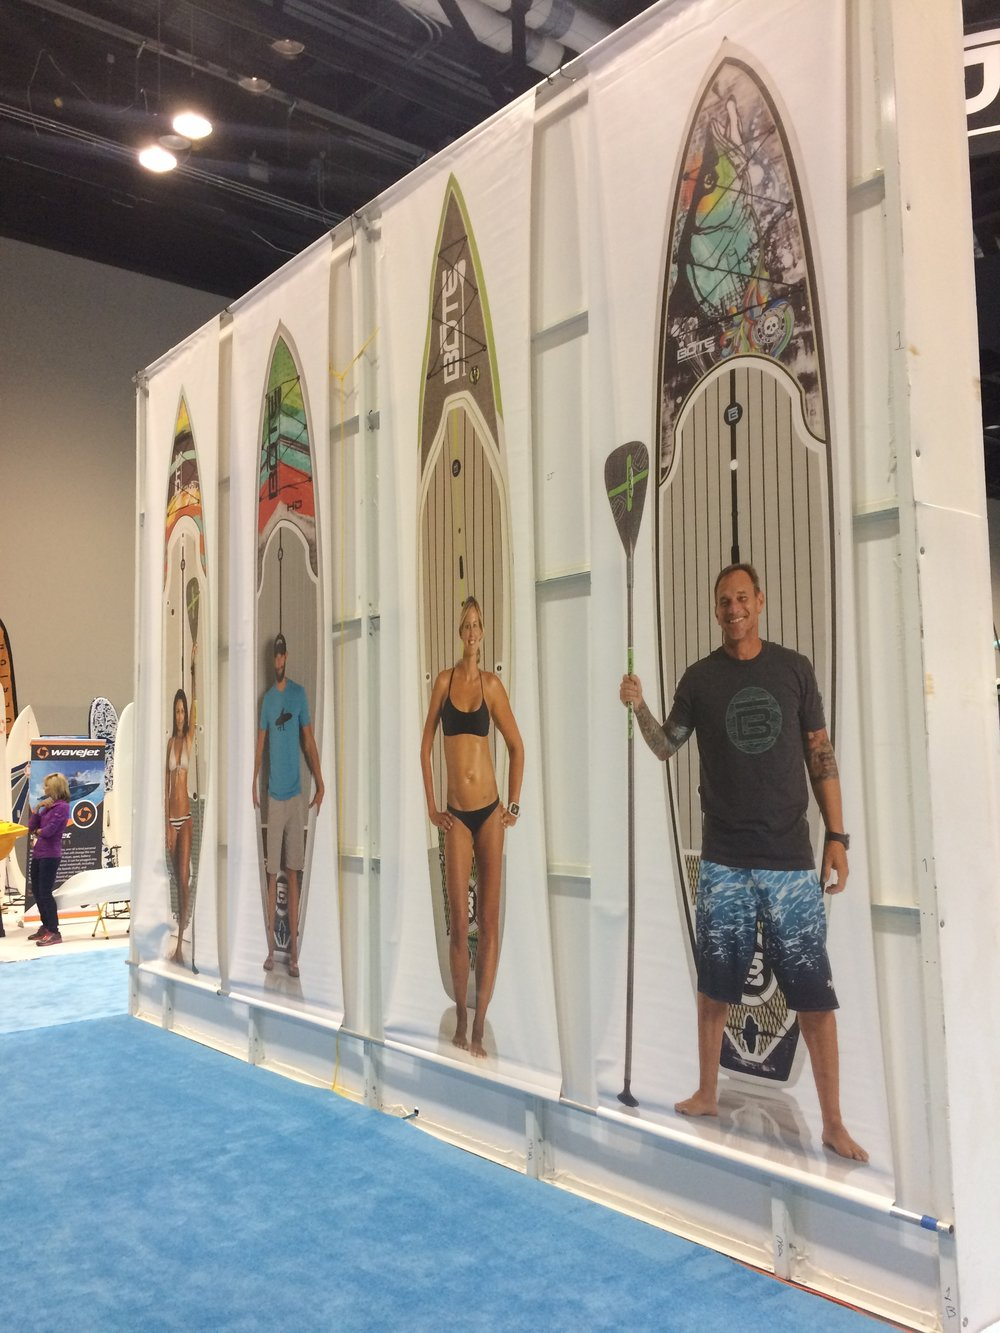 "Boat always ""Stands Apart"" from the other SUP brands with a larger than life booth and cool displays and details."